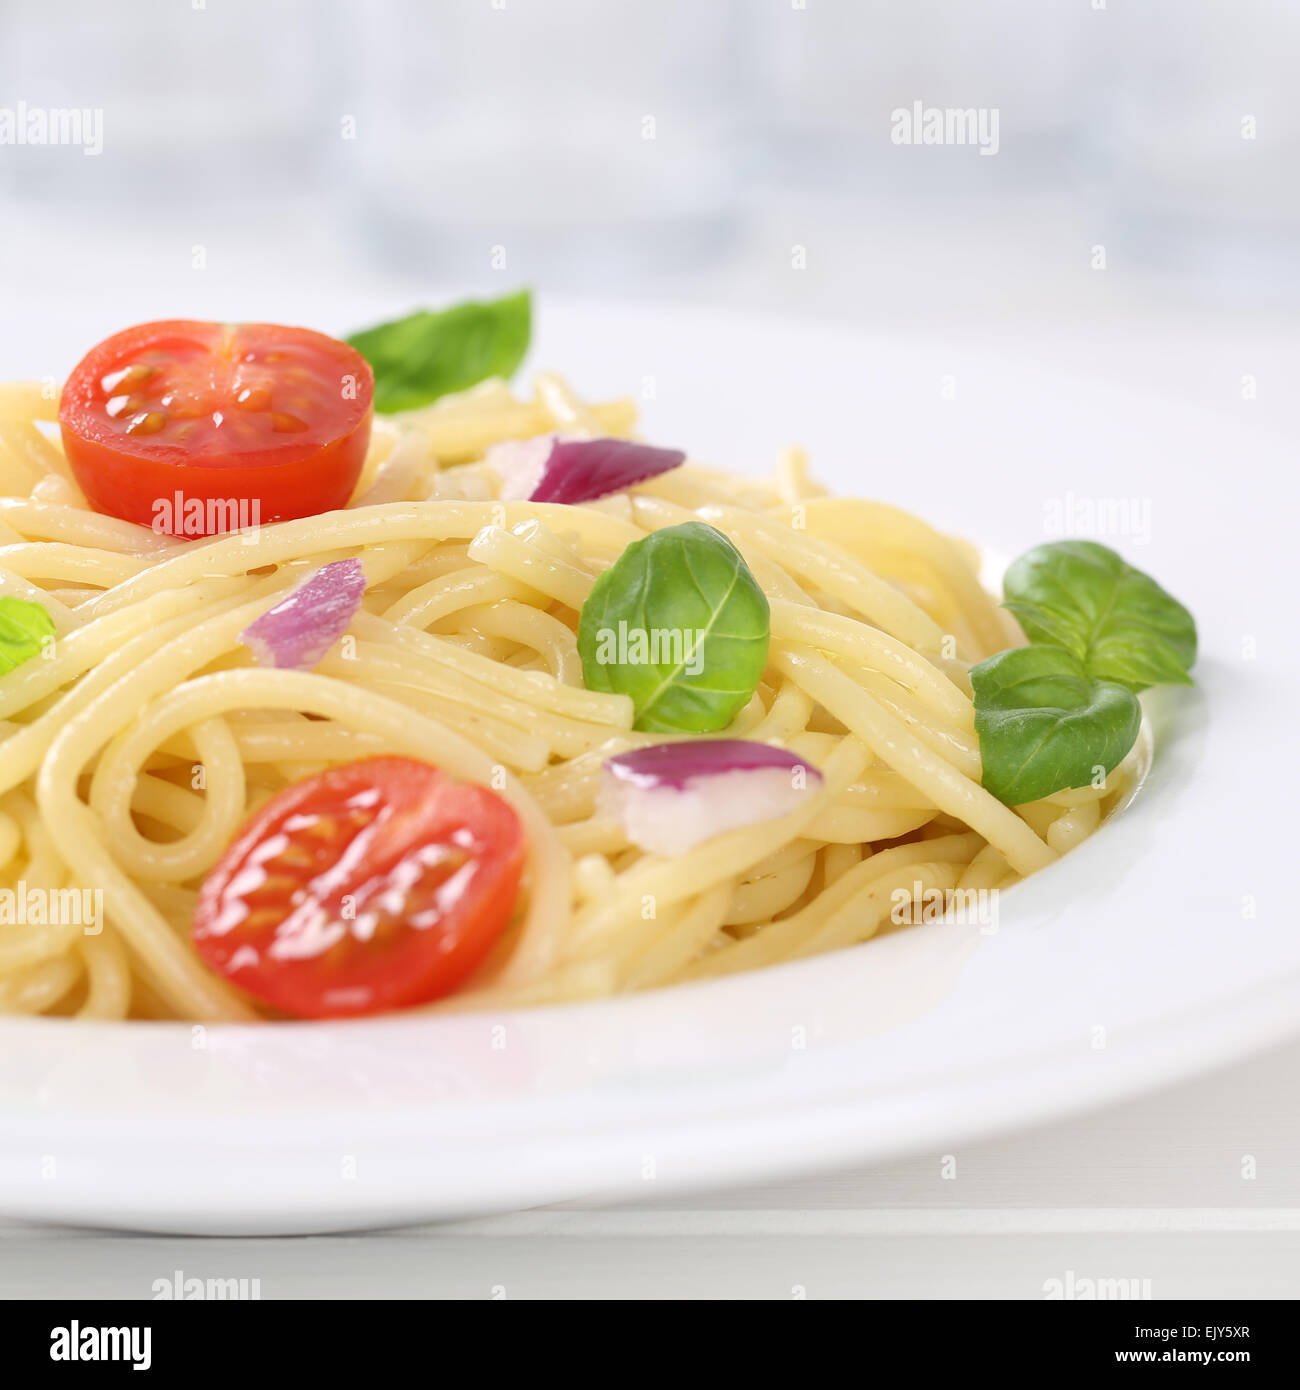 Italian cuisine spaghetti with tomatoes and basil noodles pasta on a plate - Stock Image